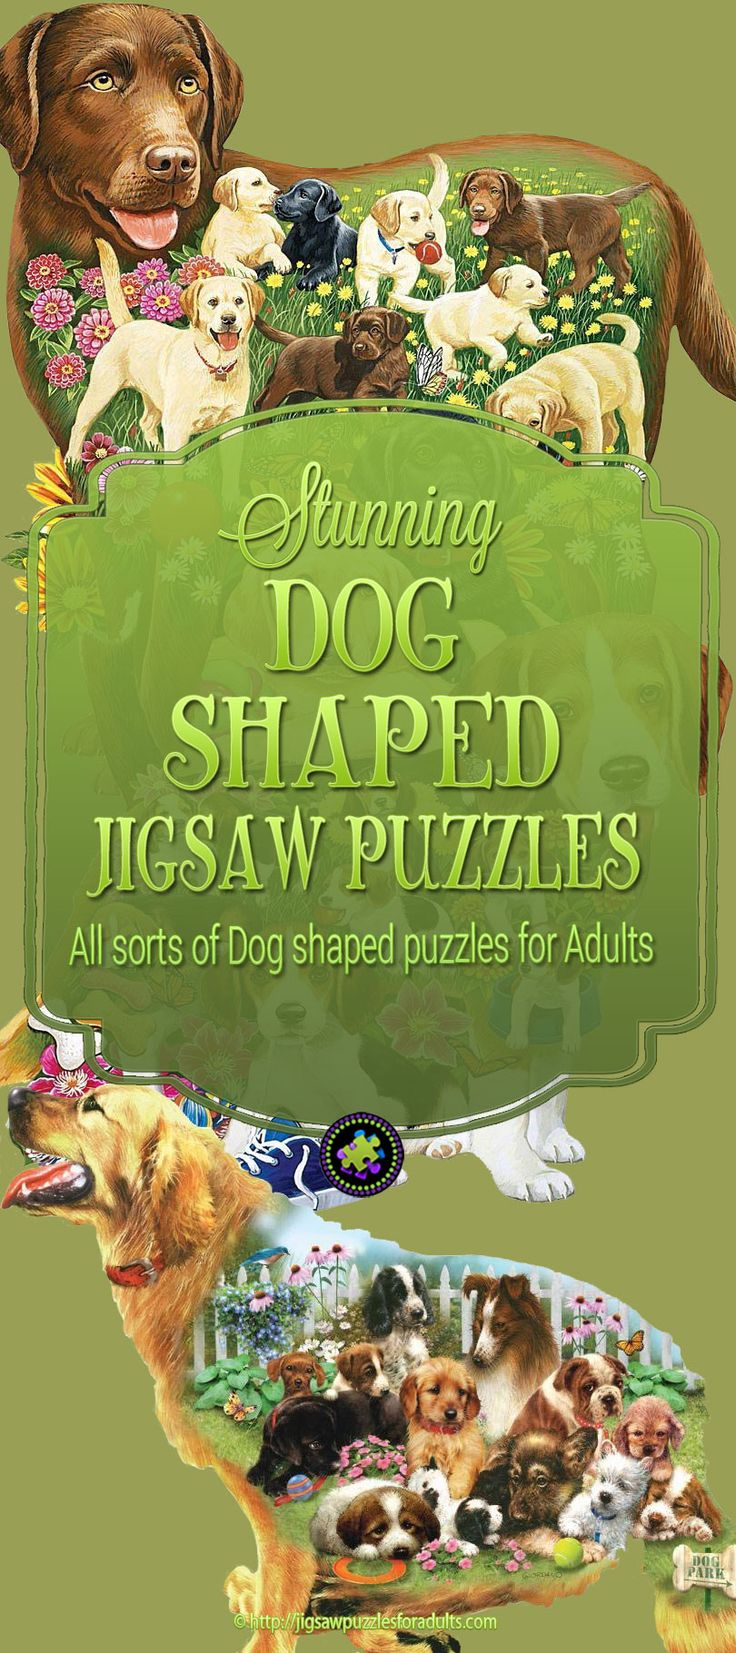 These beautiful Dog Shaped Jigsaw Puzzles are fun to put together with no straight edges they will give you the challenge you're looking for. Jigsaw puzzles that are shaped like dogs make the perfect gift for a dog loving avid jigsaw puzzler!